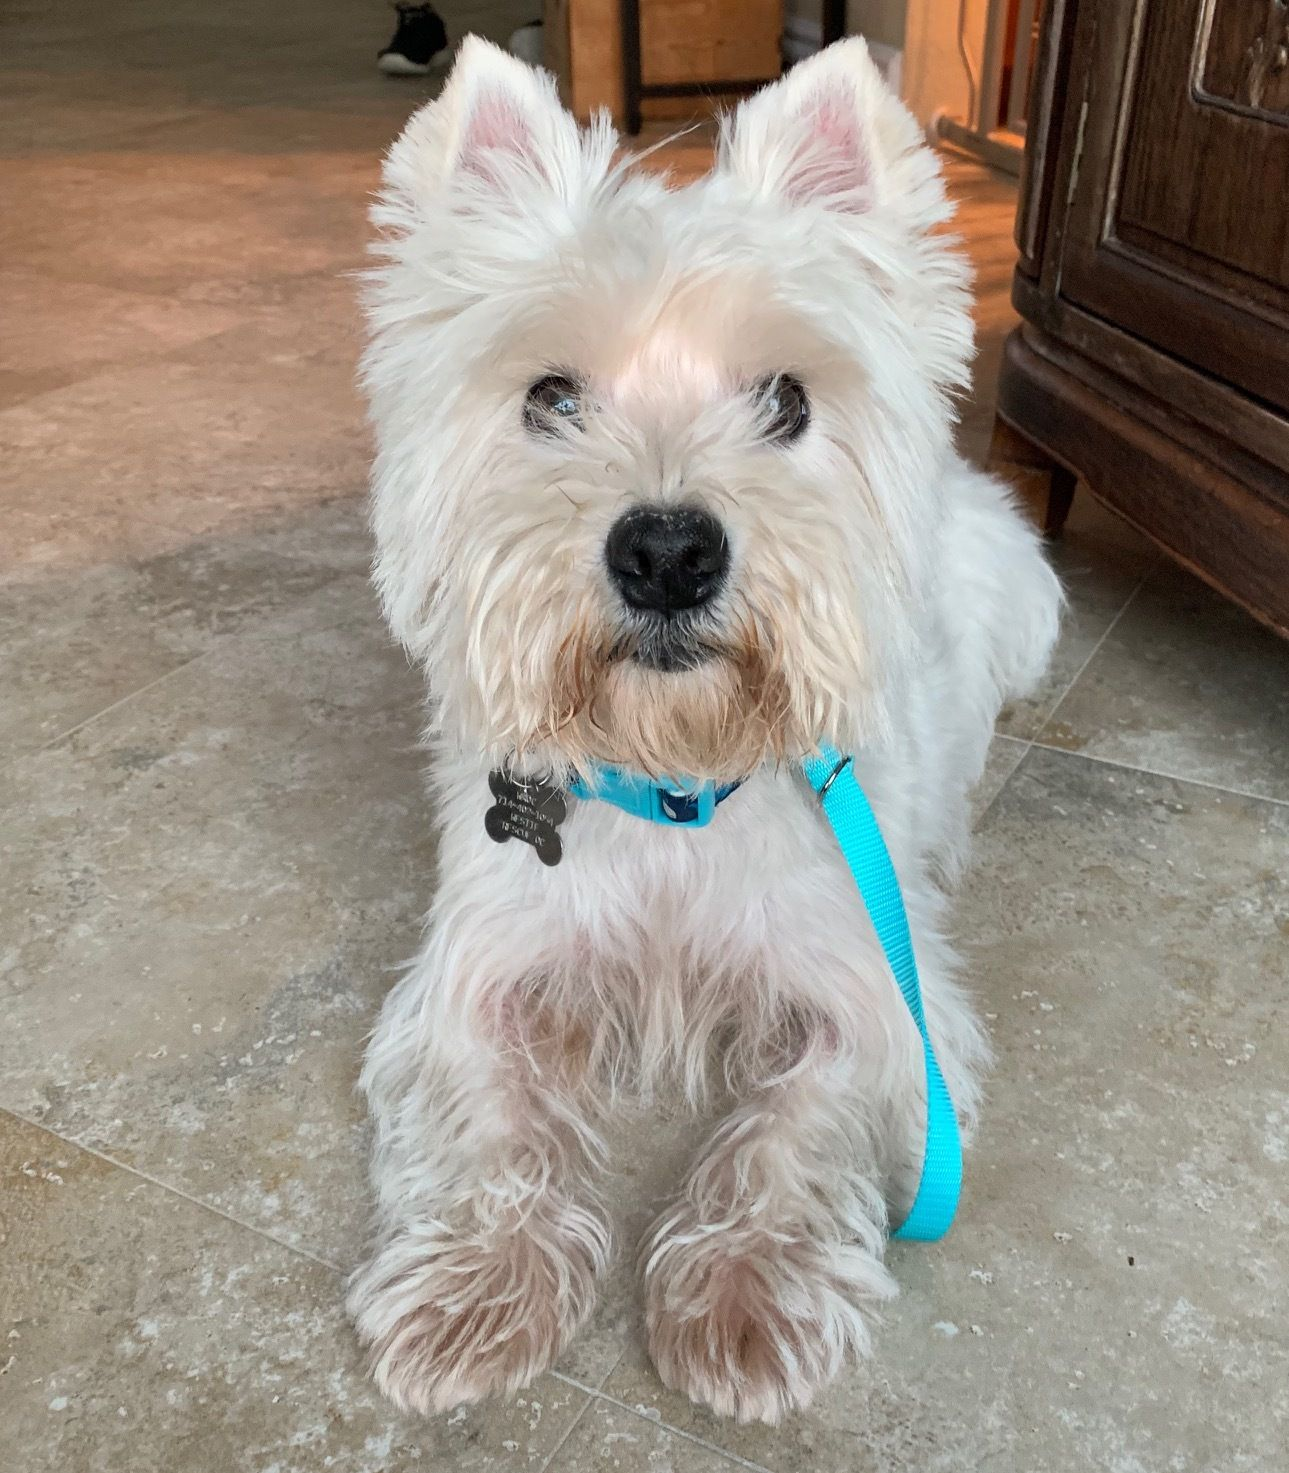 Adopt Chester on West highland white terrier, Dog